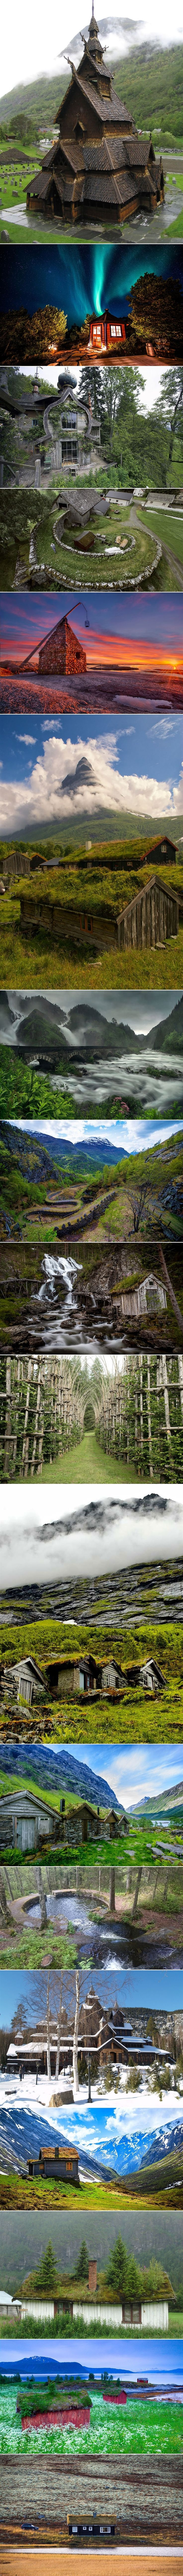 Norway: Land of trolls and beautiful architecture - Imgur